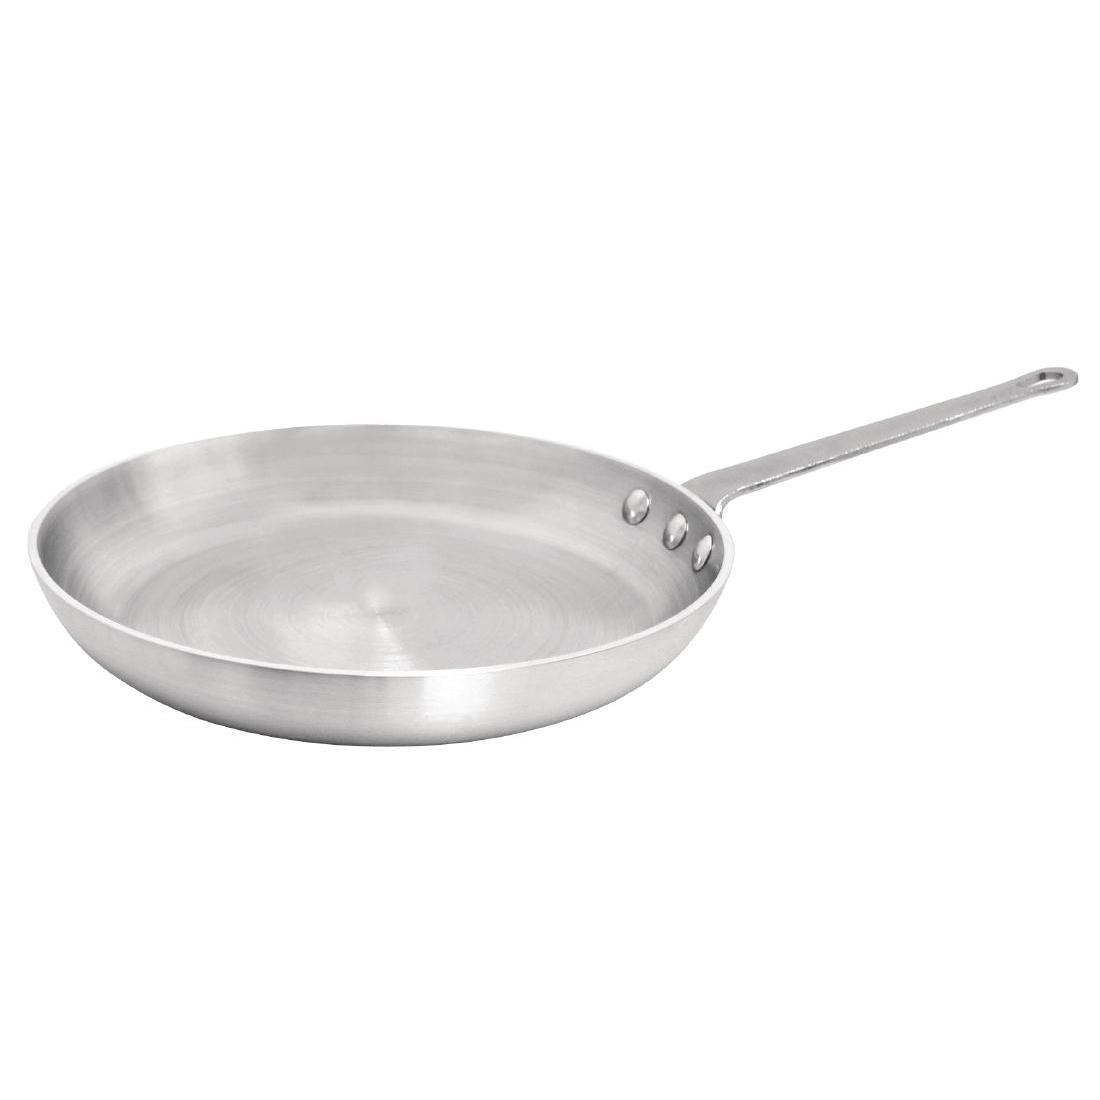 Vogue Aluminium Frying Pan 280mm - Each - GL216